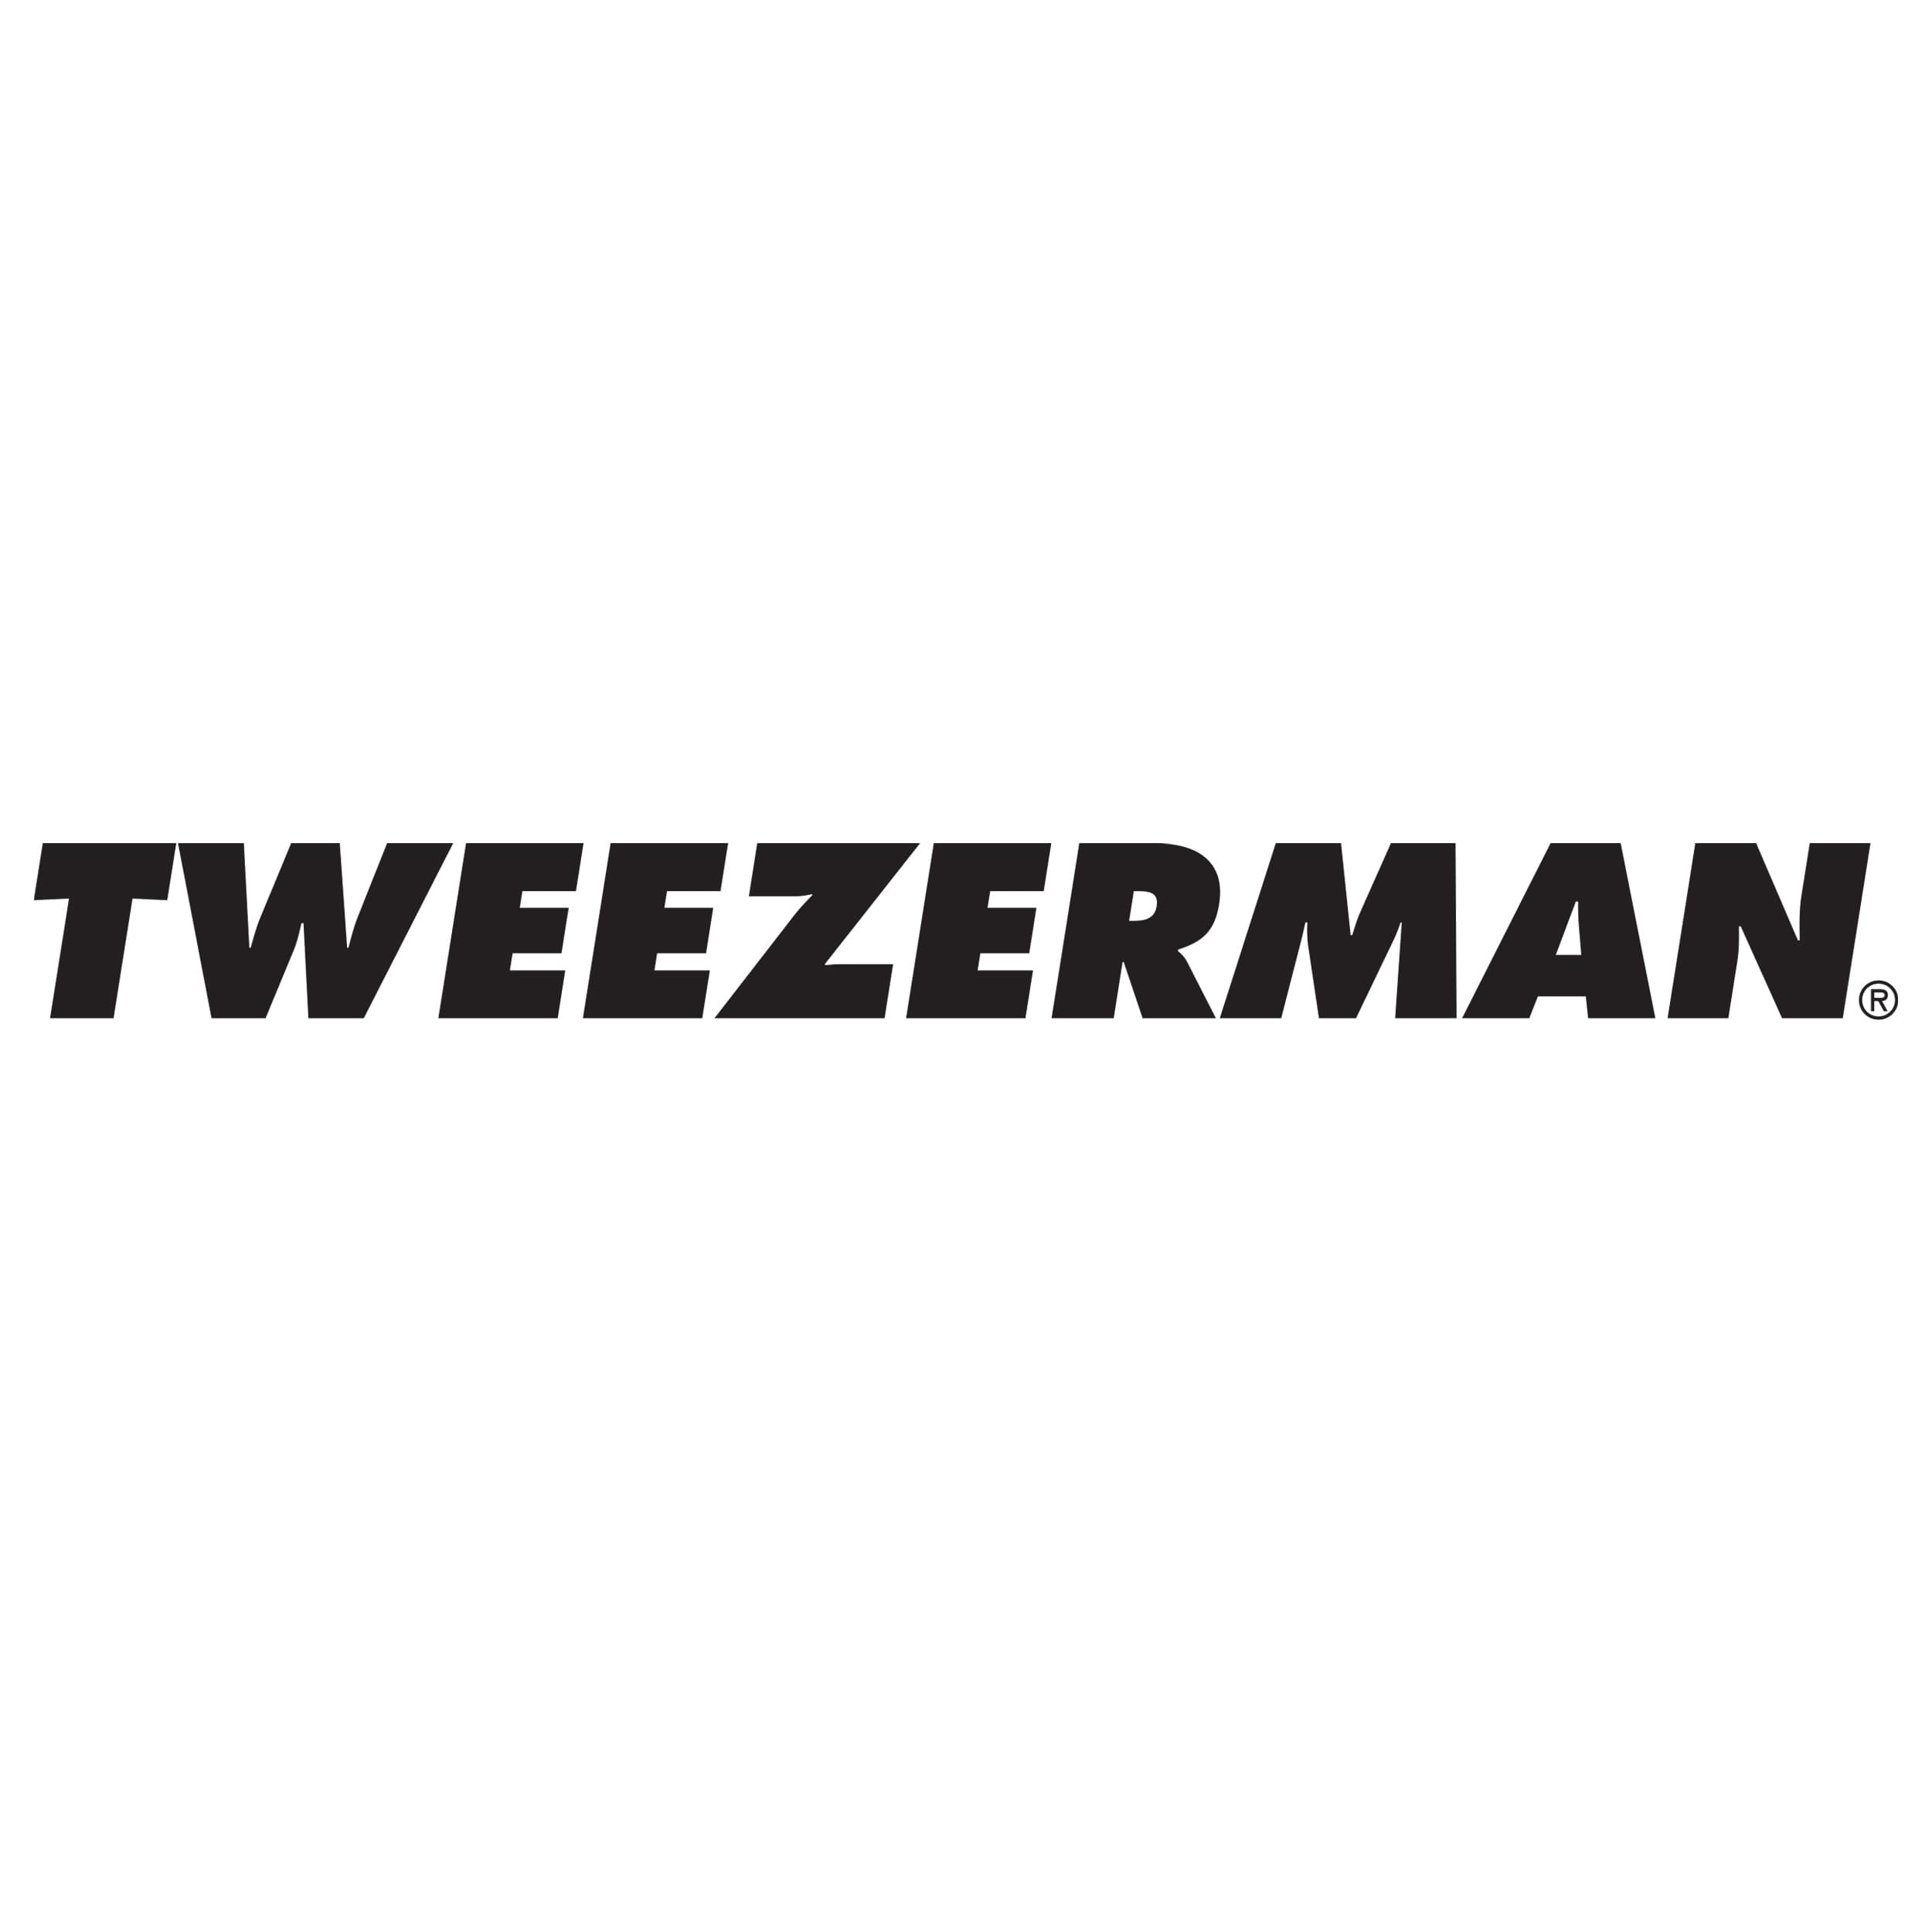 Deluxe Cosmetic Pencil Sharpener - 9035-R - Tweezerman UK